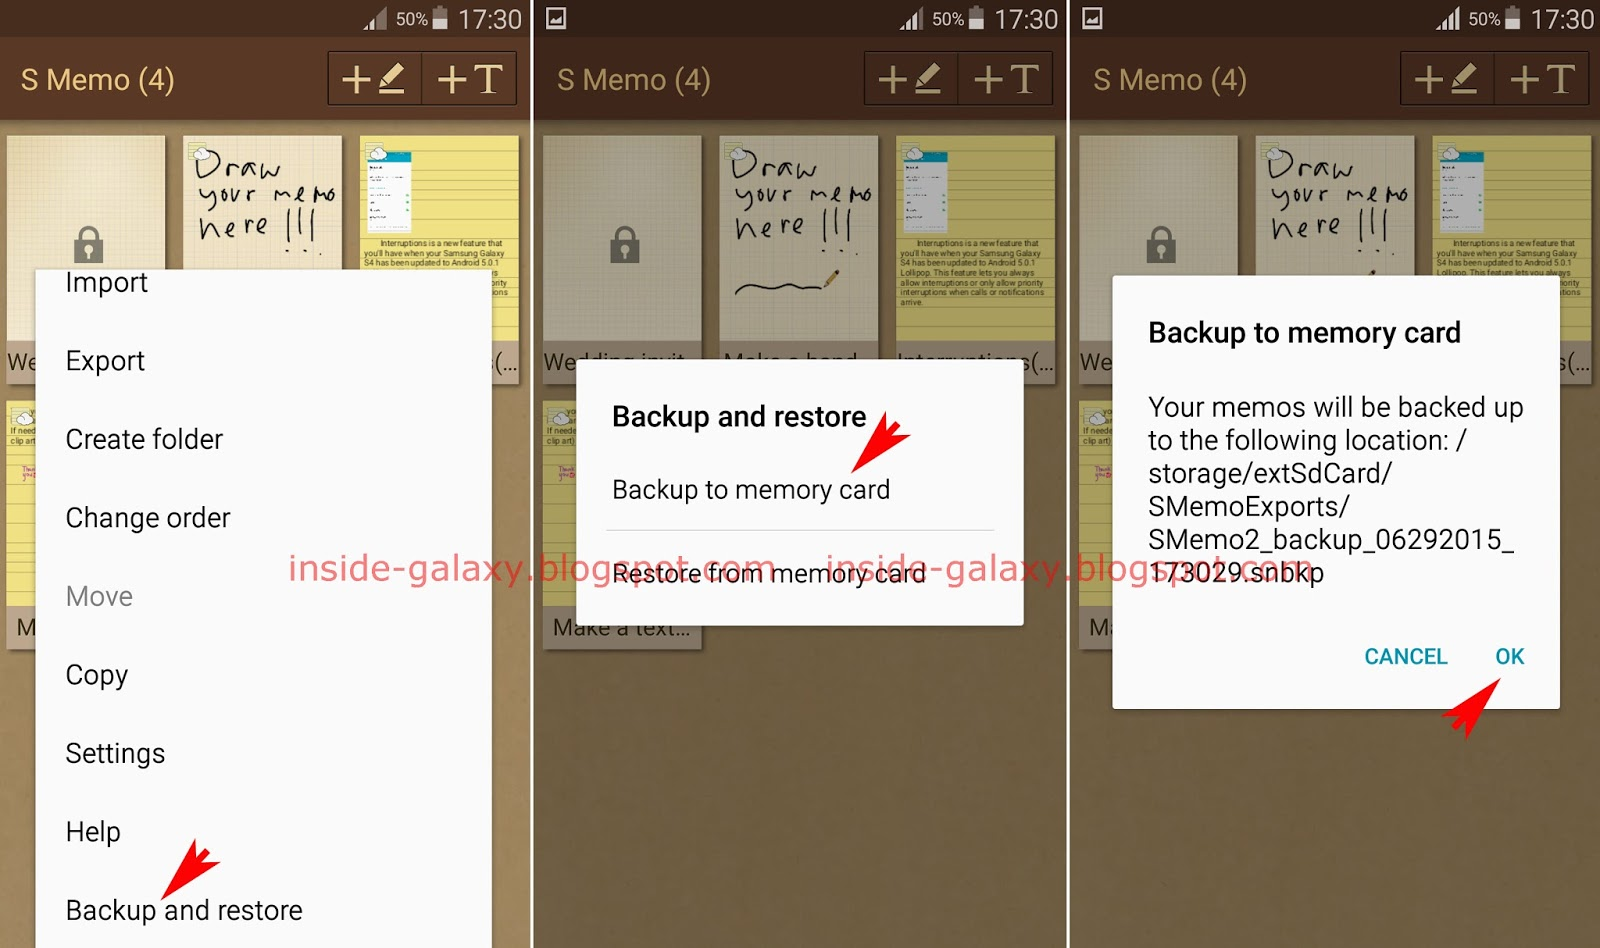 Samsung Galaxy S4: How to Backup Memos to SD Card in S Memo App in